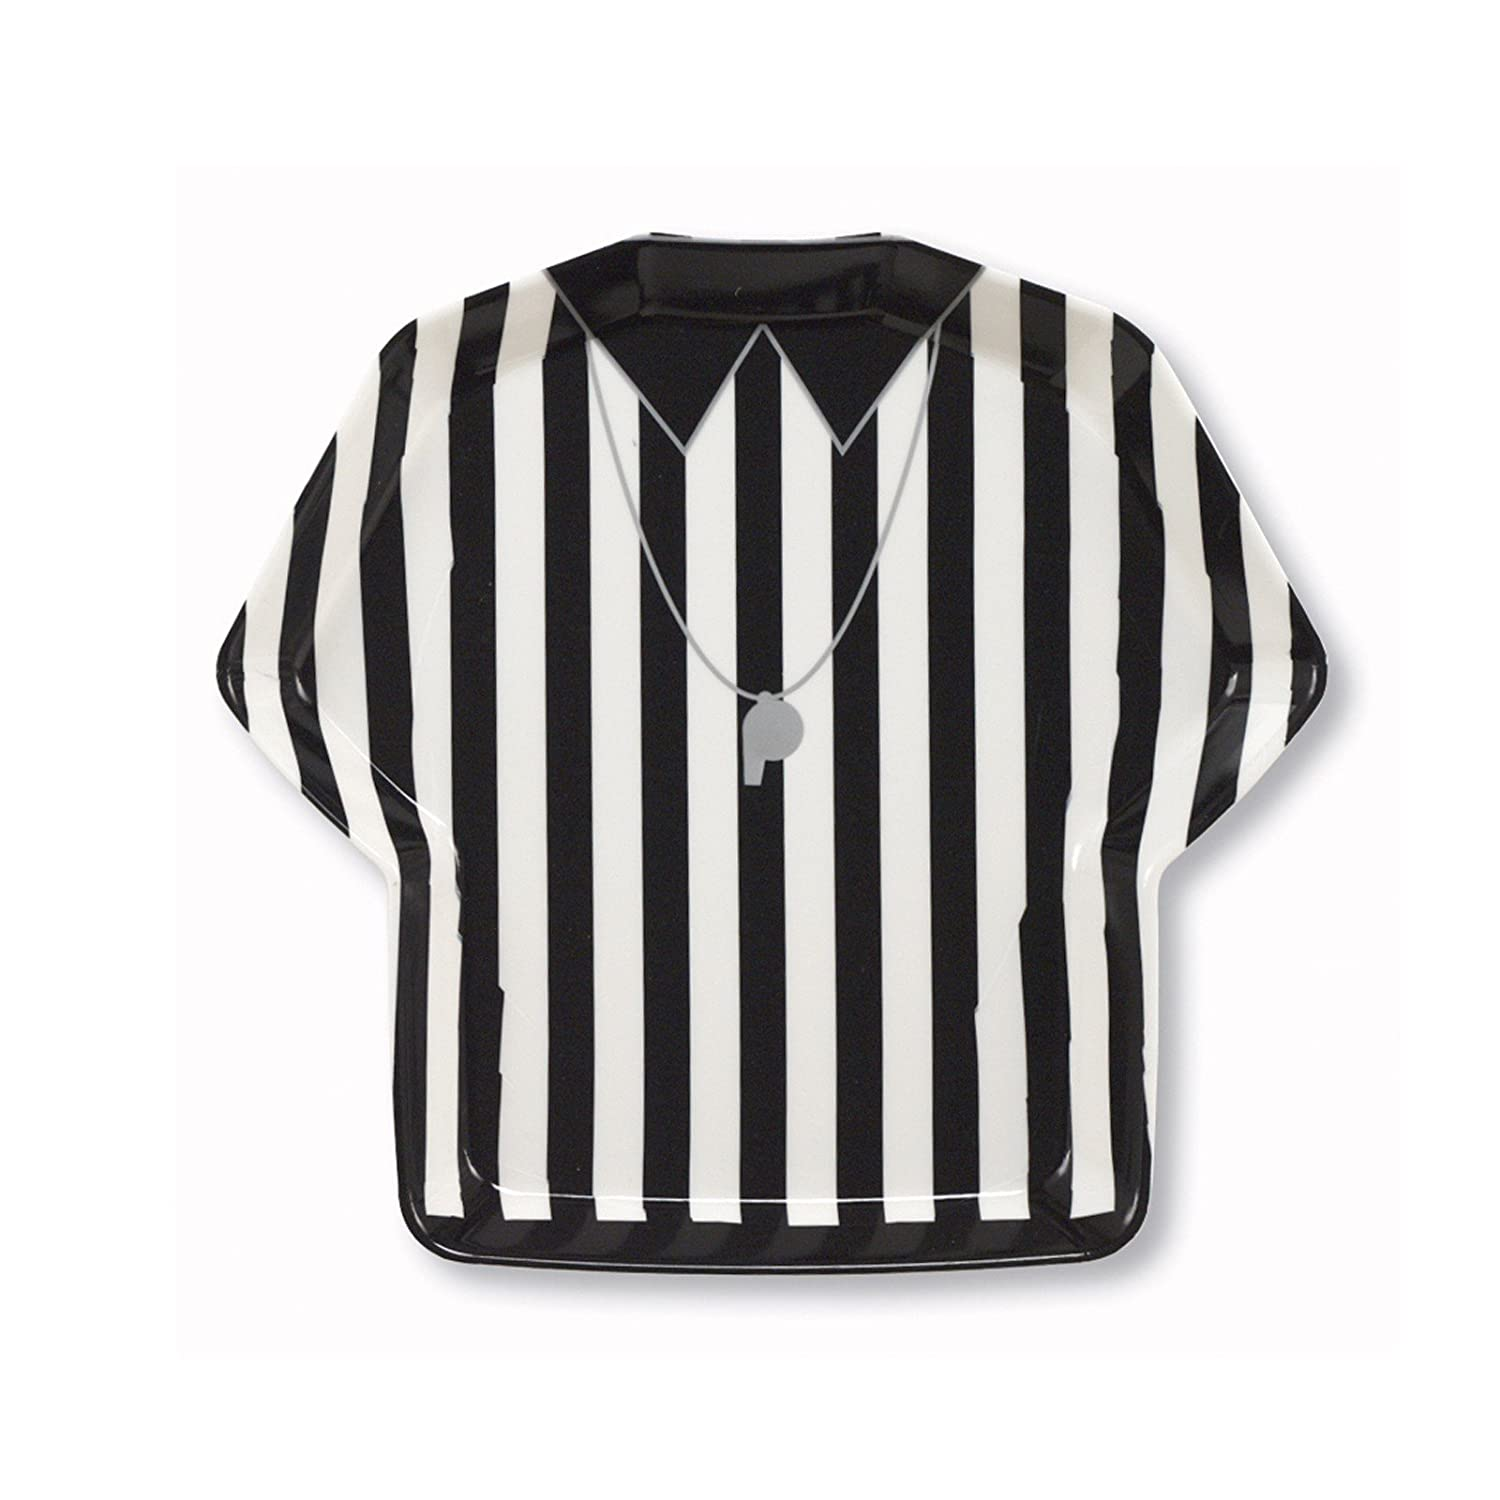 Creative Converting Referee Stripe Plastic Shirt Shaped Serving Tray, Football (Discontinued by Manufacturer) Creative Converting-Toys 064051